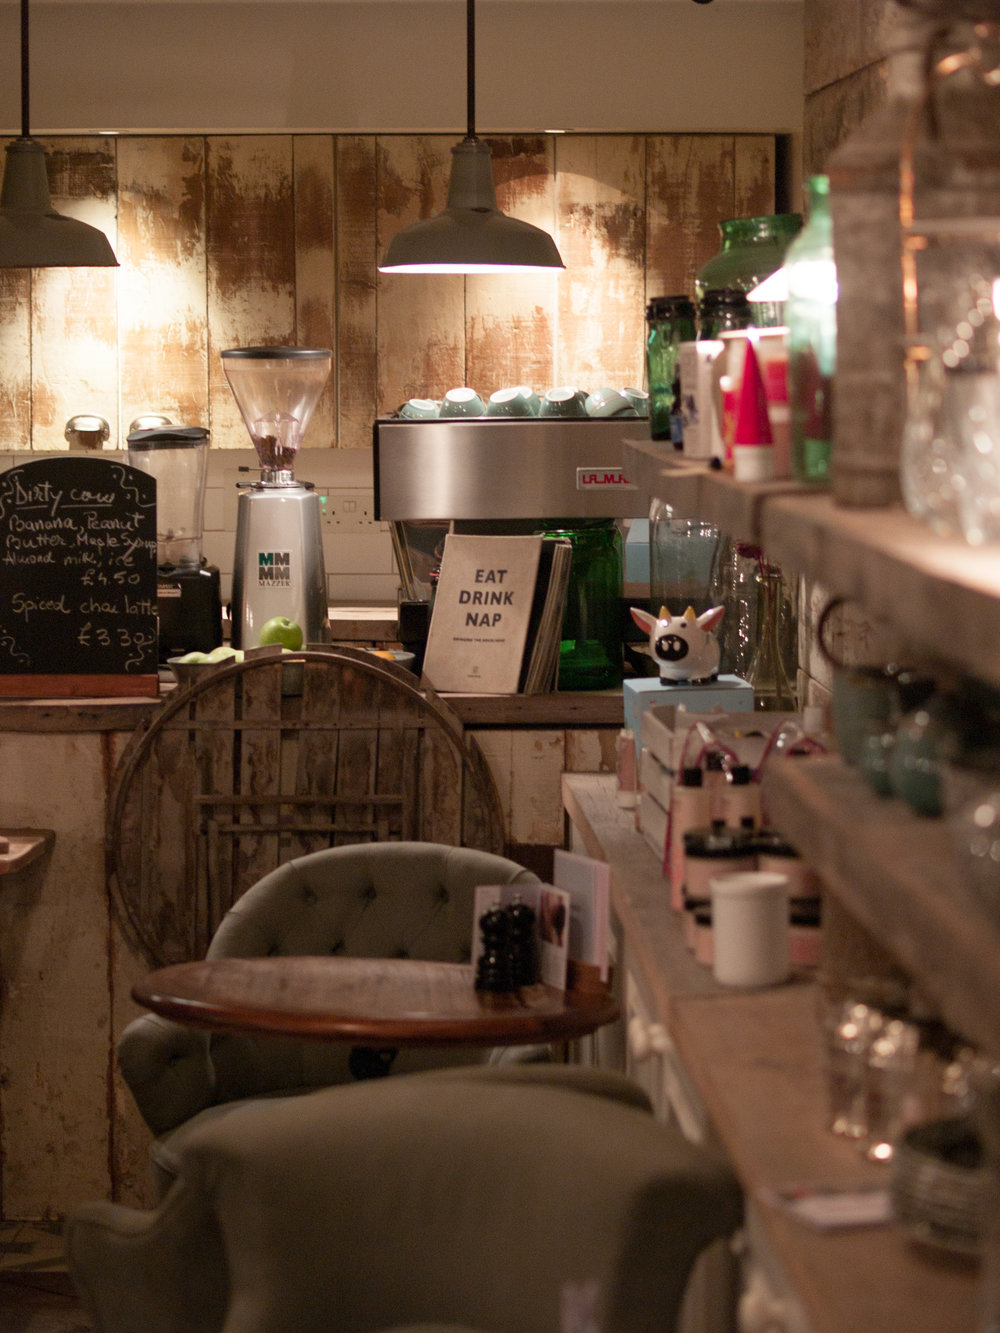 Cowshed Cafe & Shop